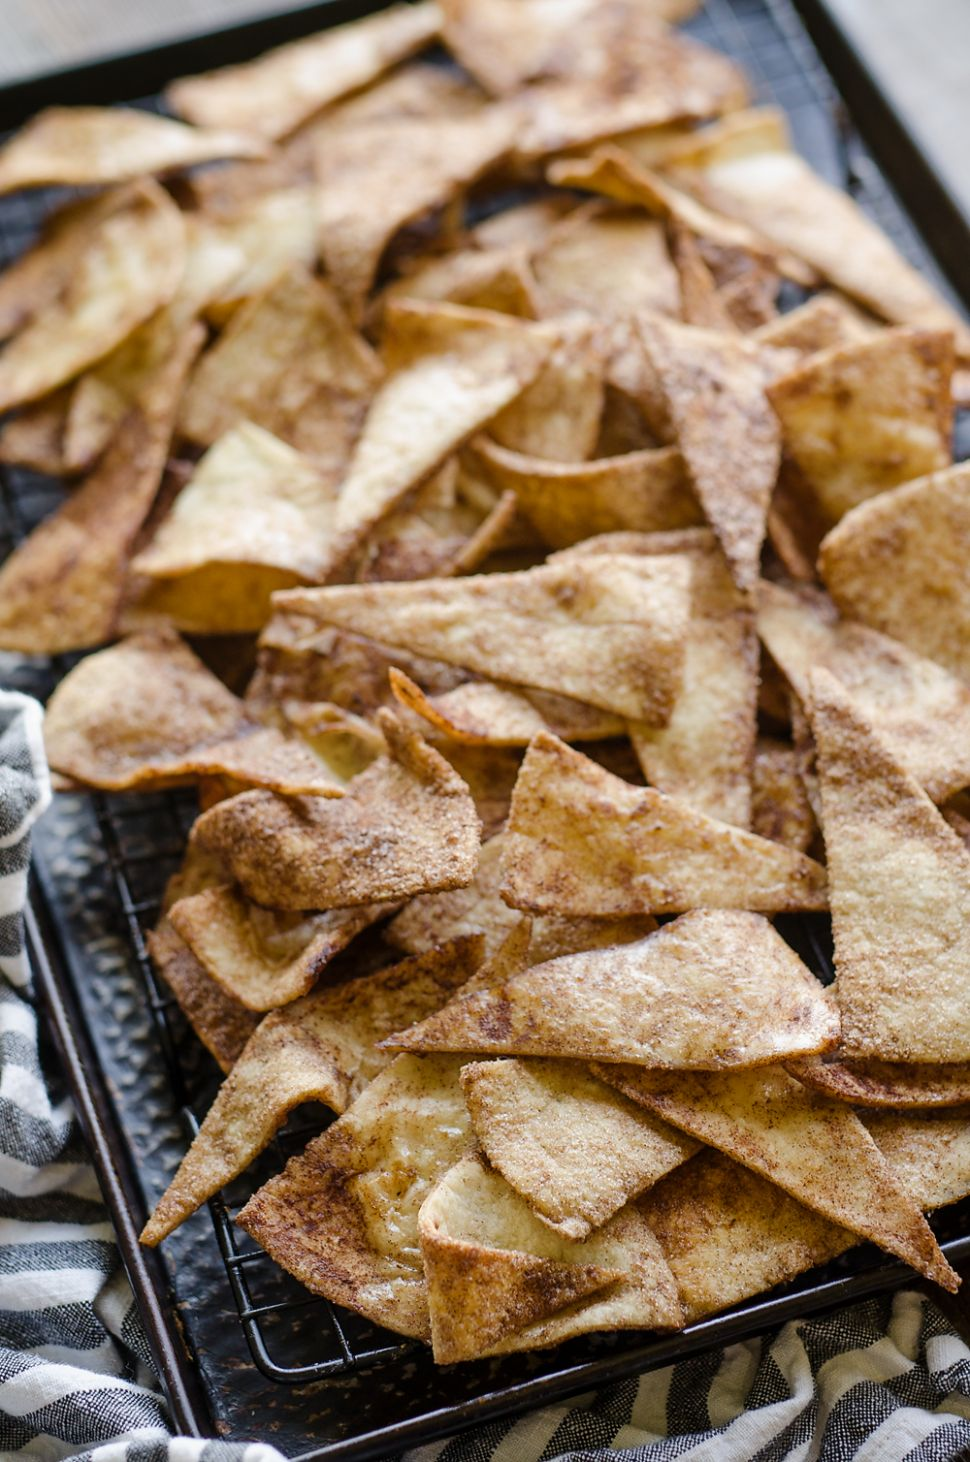 Baked Cinnamon Sugar Tortilla Chips - Homemade Snack - Dessert Recipes Using Flour Tortillas